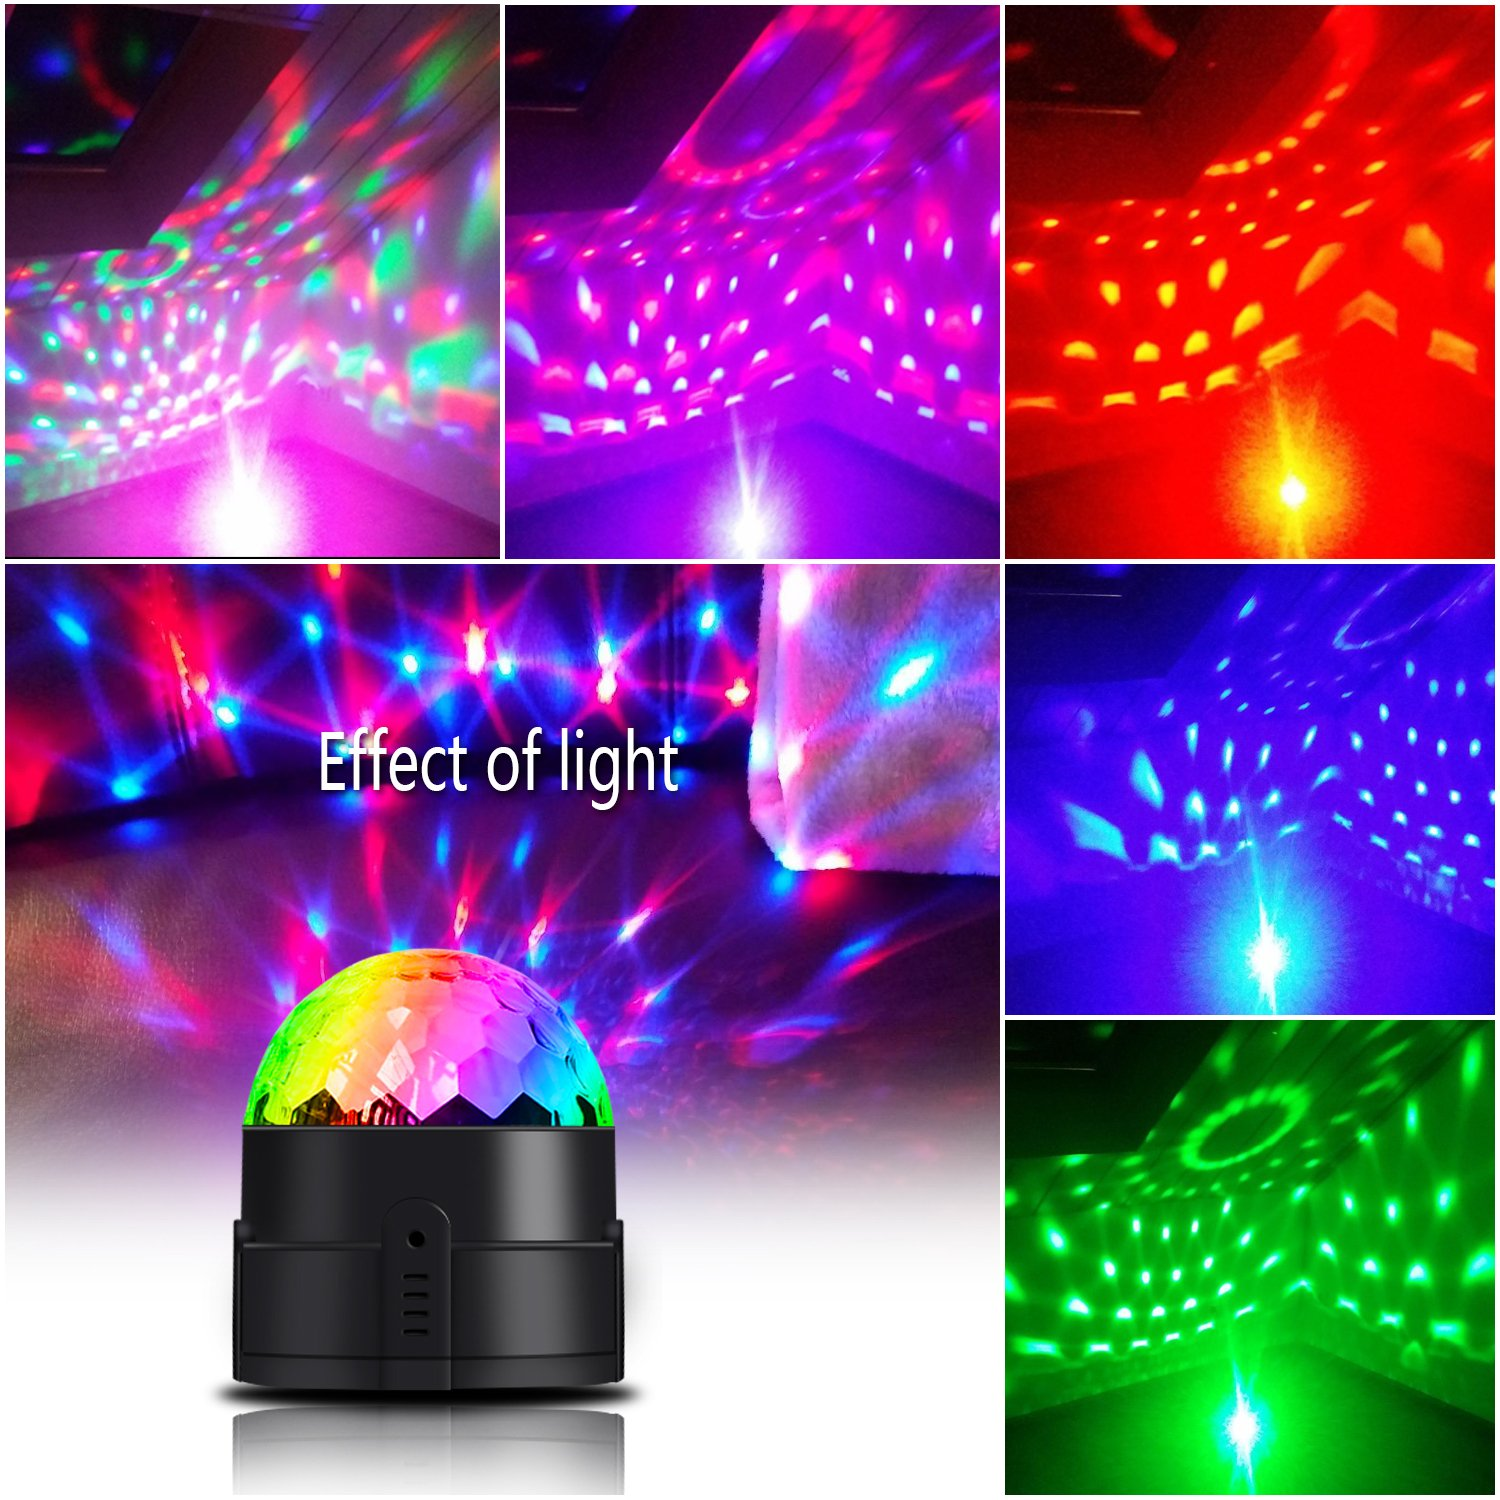 Spriak Disco Ball Party Lights 3rd Generation Strobe Light 3W DJ Dance Lights Sound Activated Portable Stage Light for Xmas Halloween Kids Birthday Party (with USB) by Spriak (Image #6)